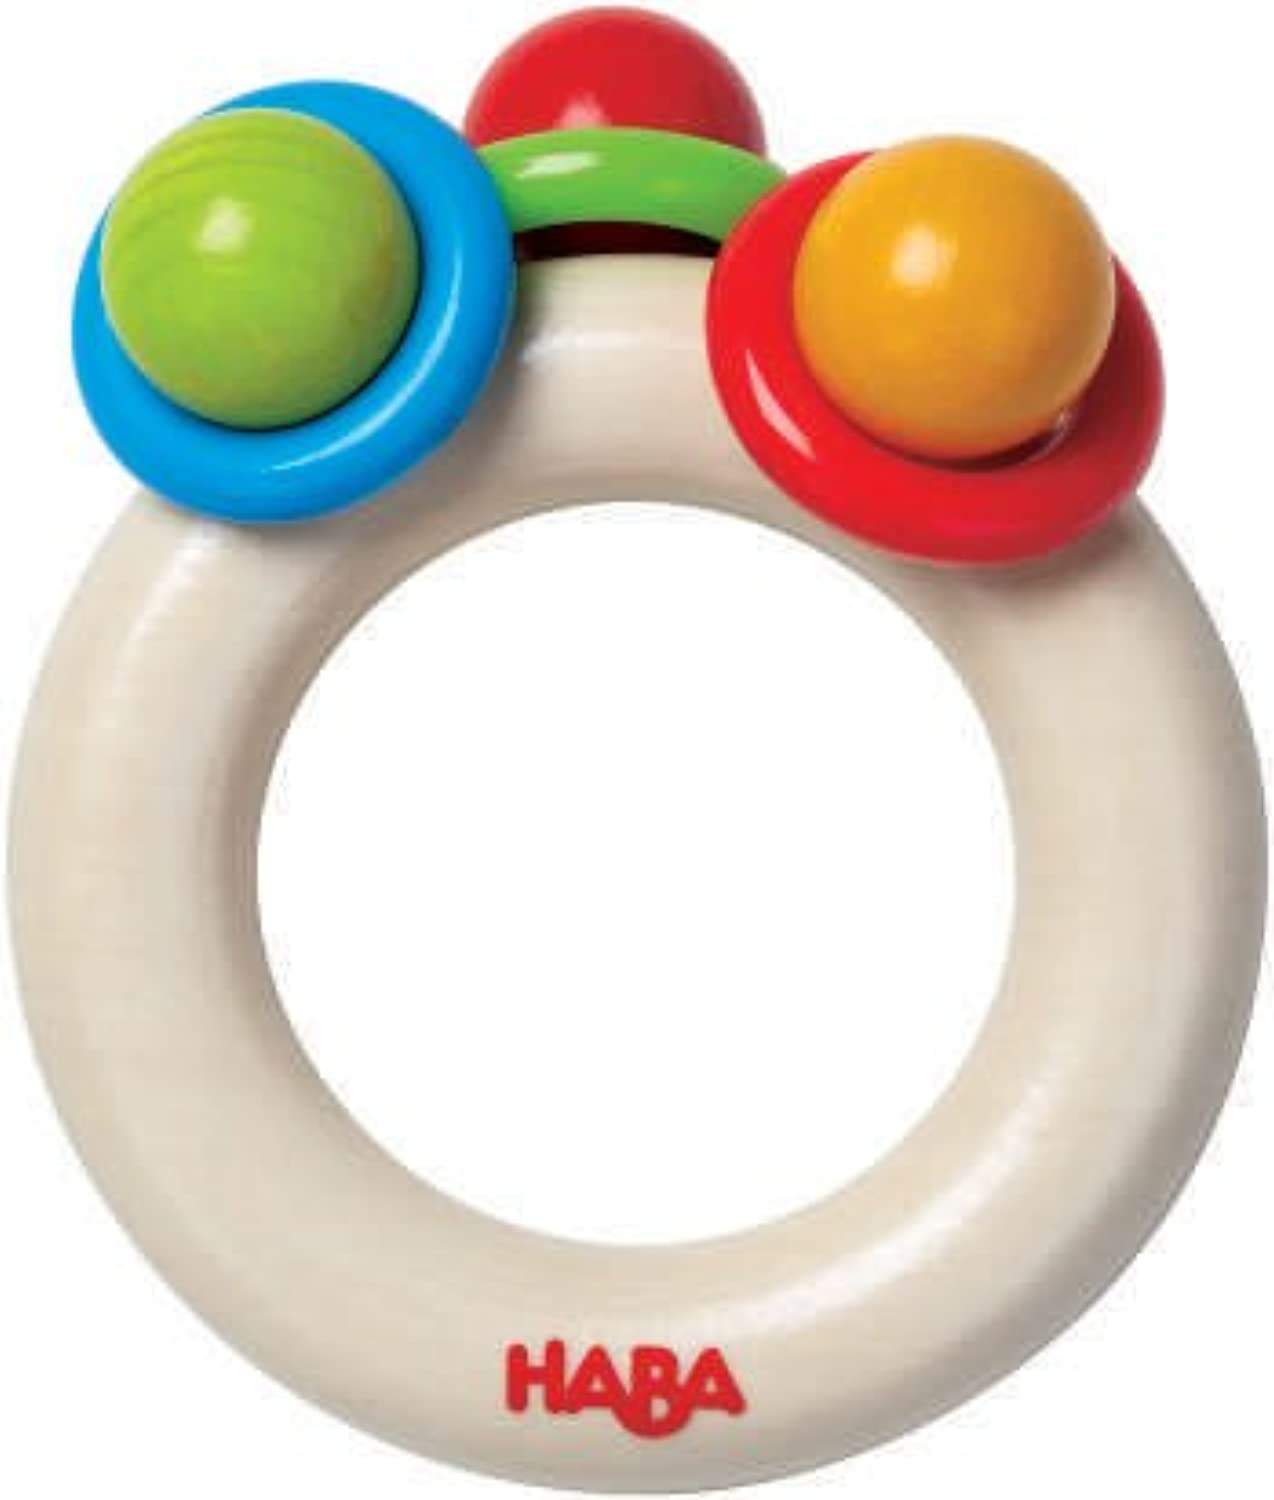 Haba Bommel Clutching Toy by HABA